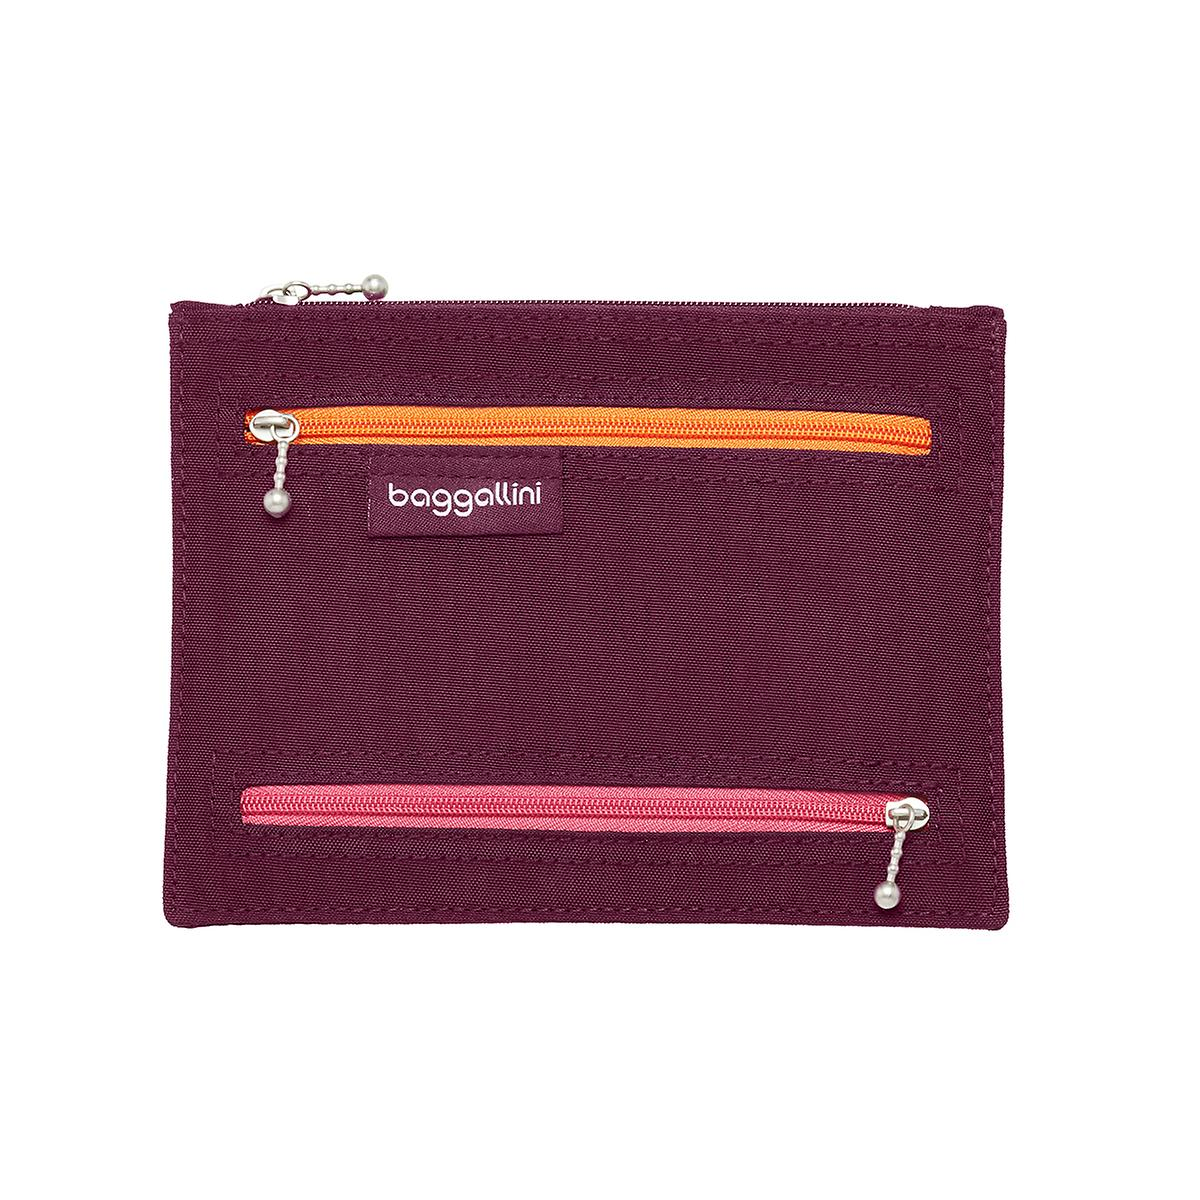 baggallini Eggplant RFID-Blocking Passport & Currency Organizer